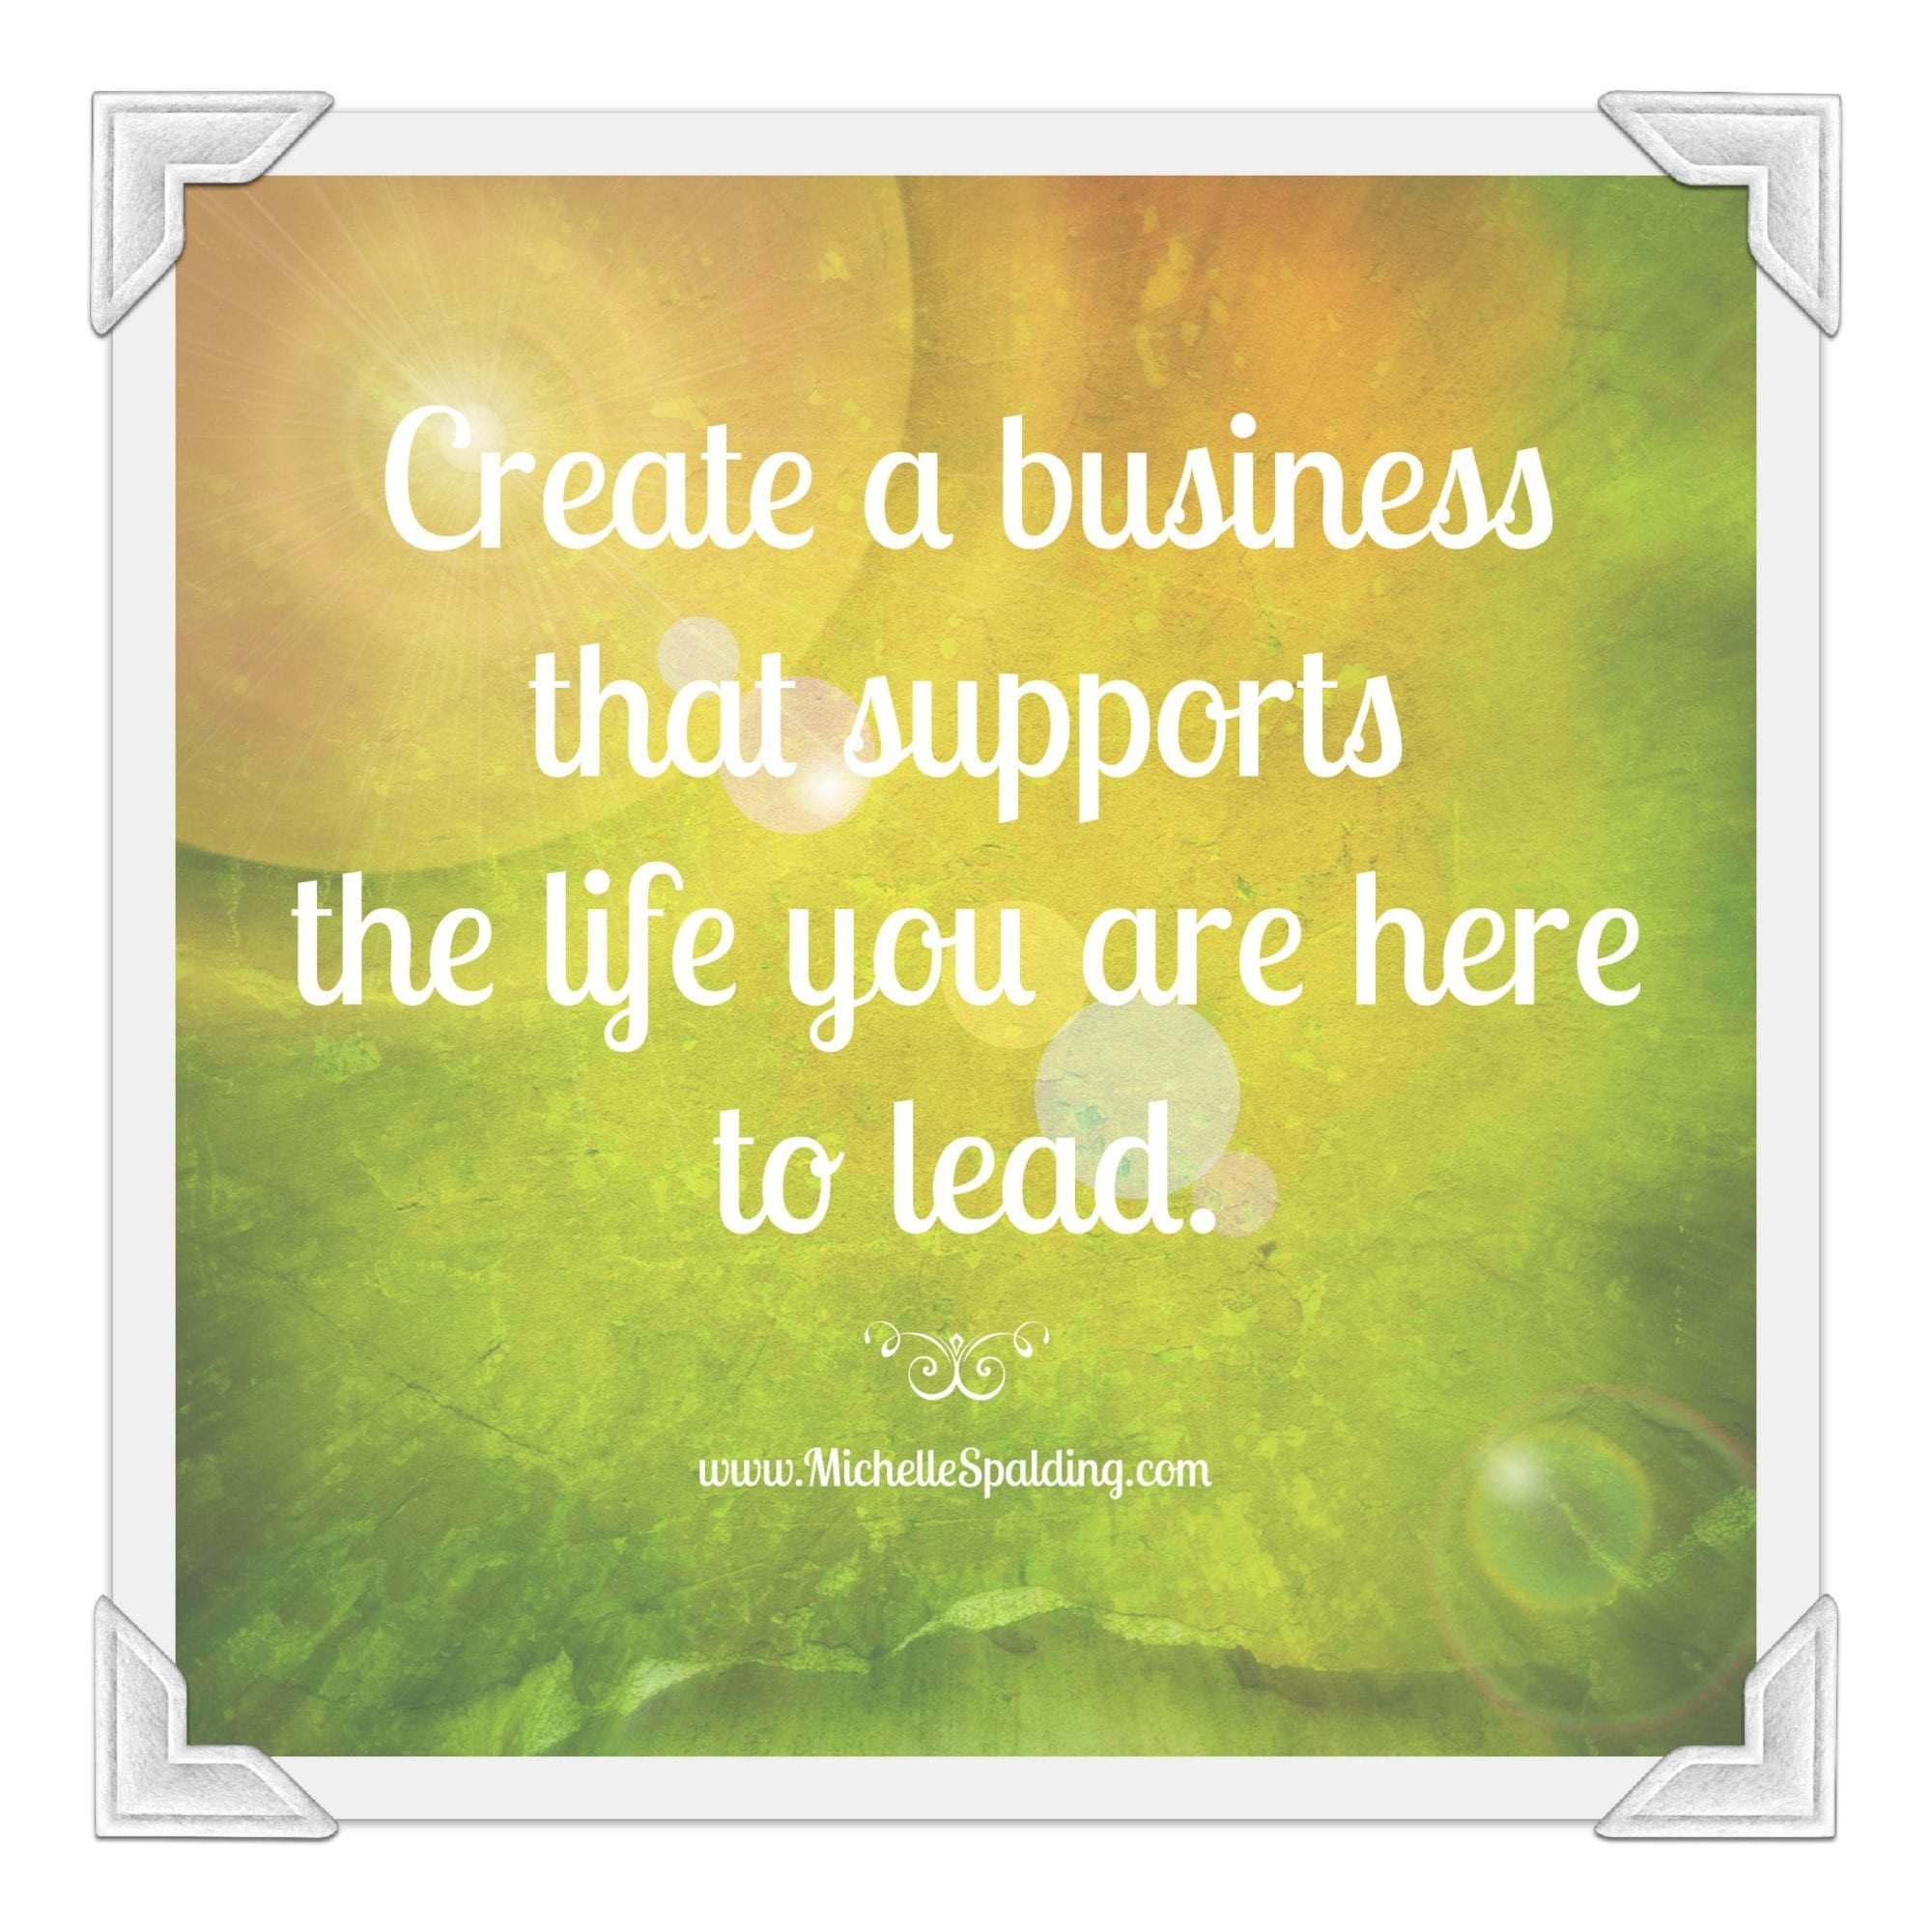 Create a business that supports the life you are here to lead.